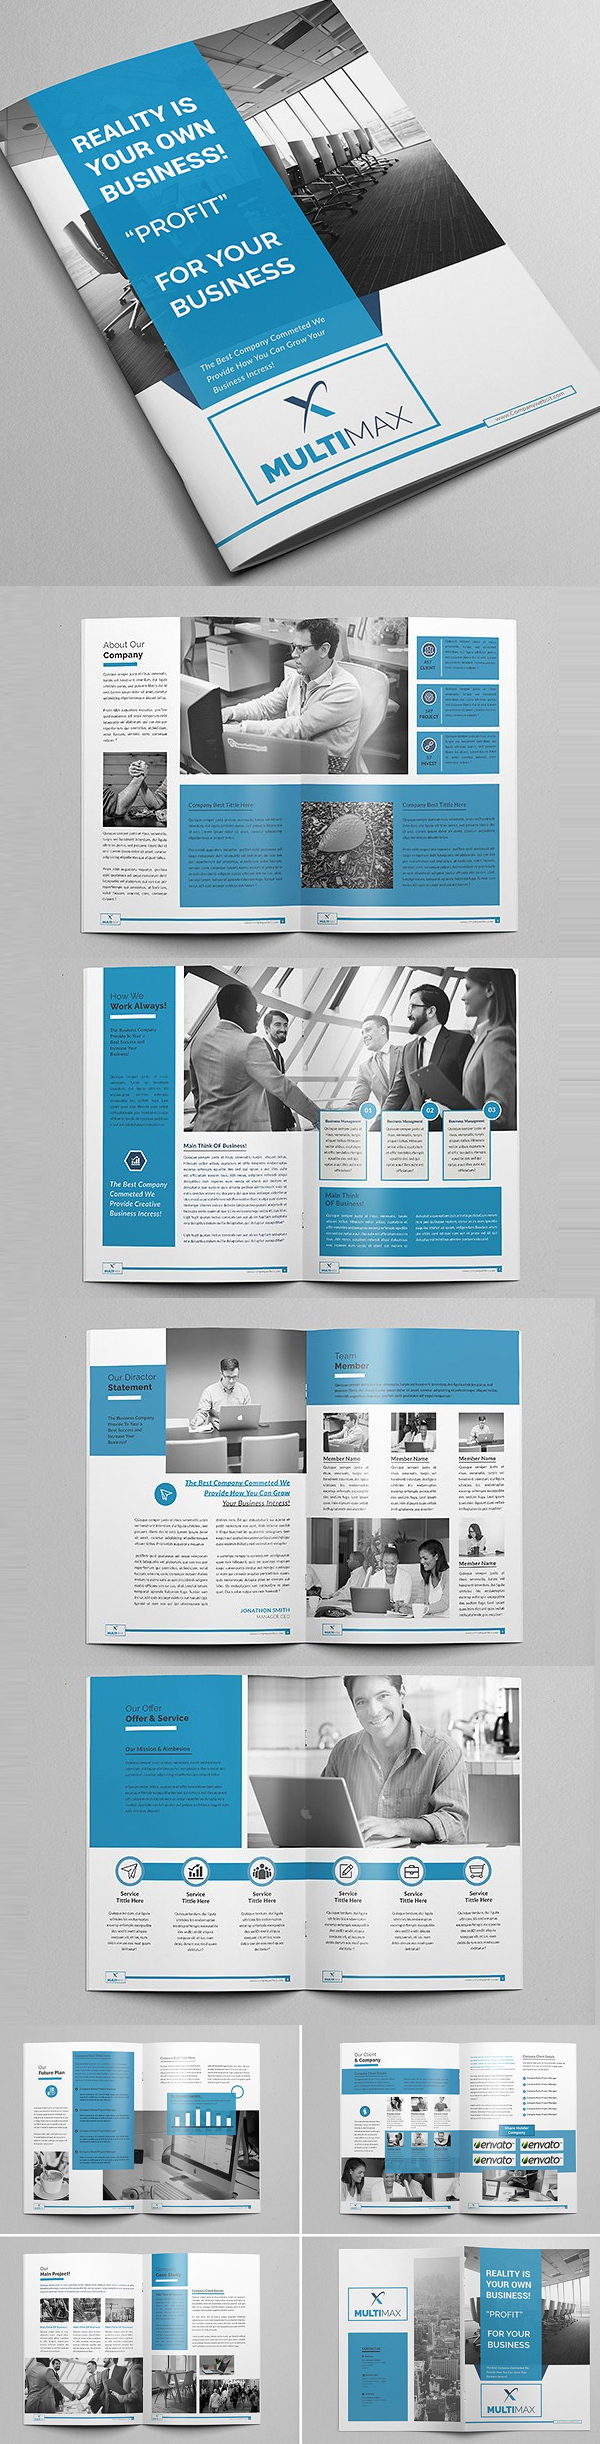 New brochure templates catalog design design graphic for Company brochure design templates